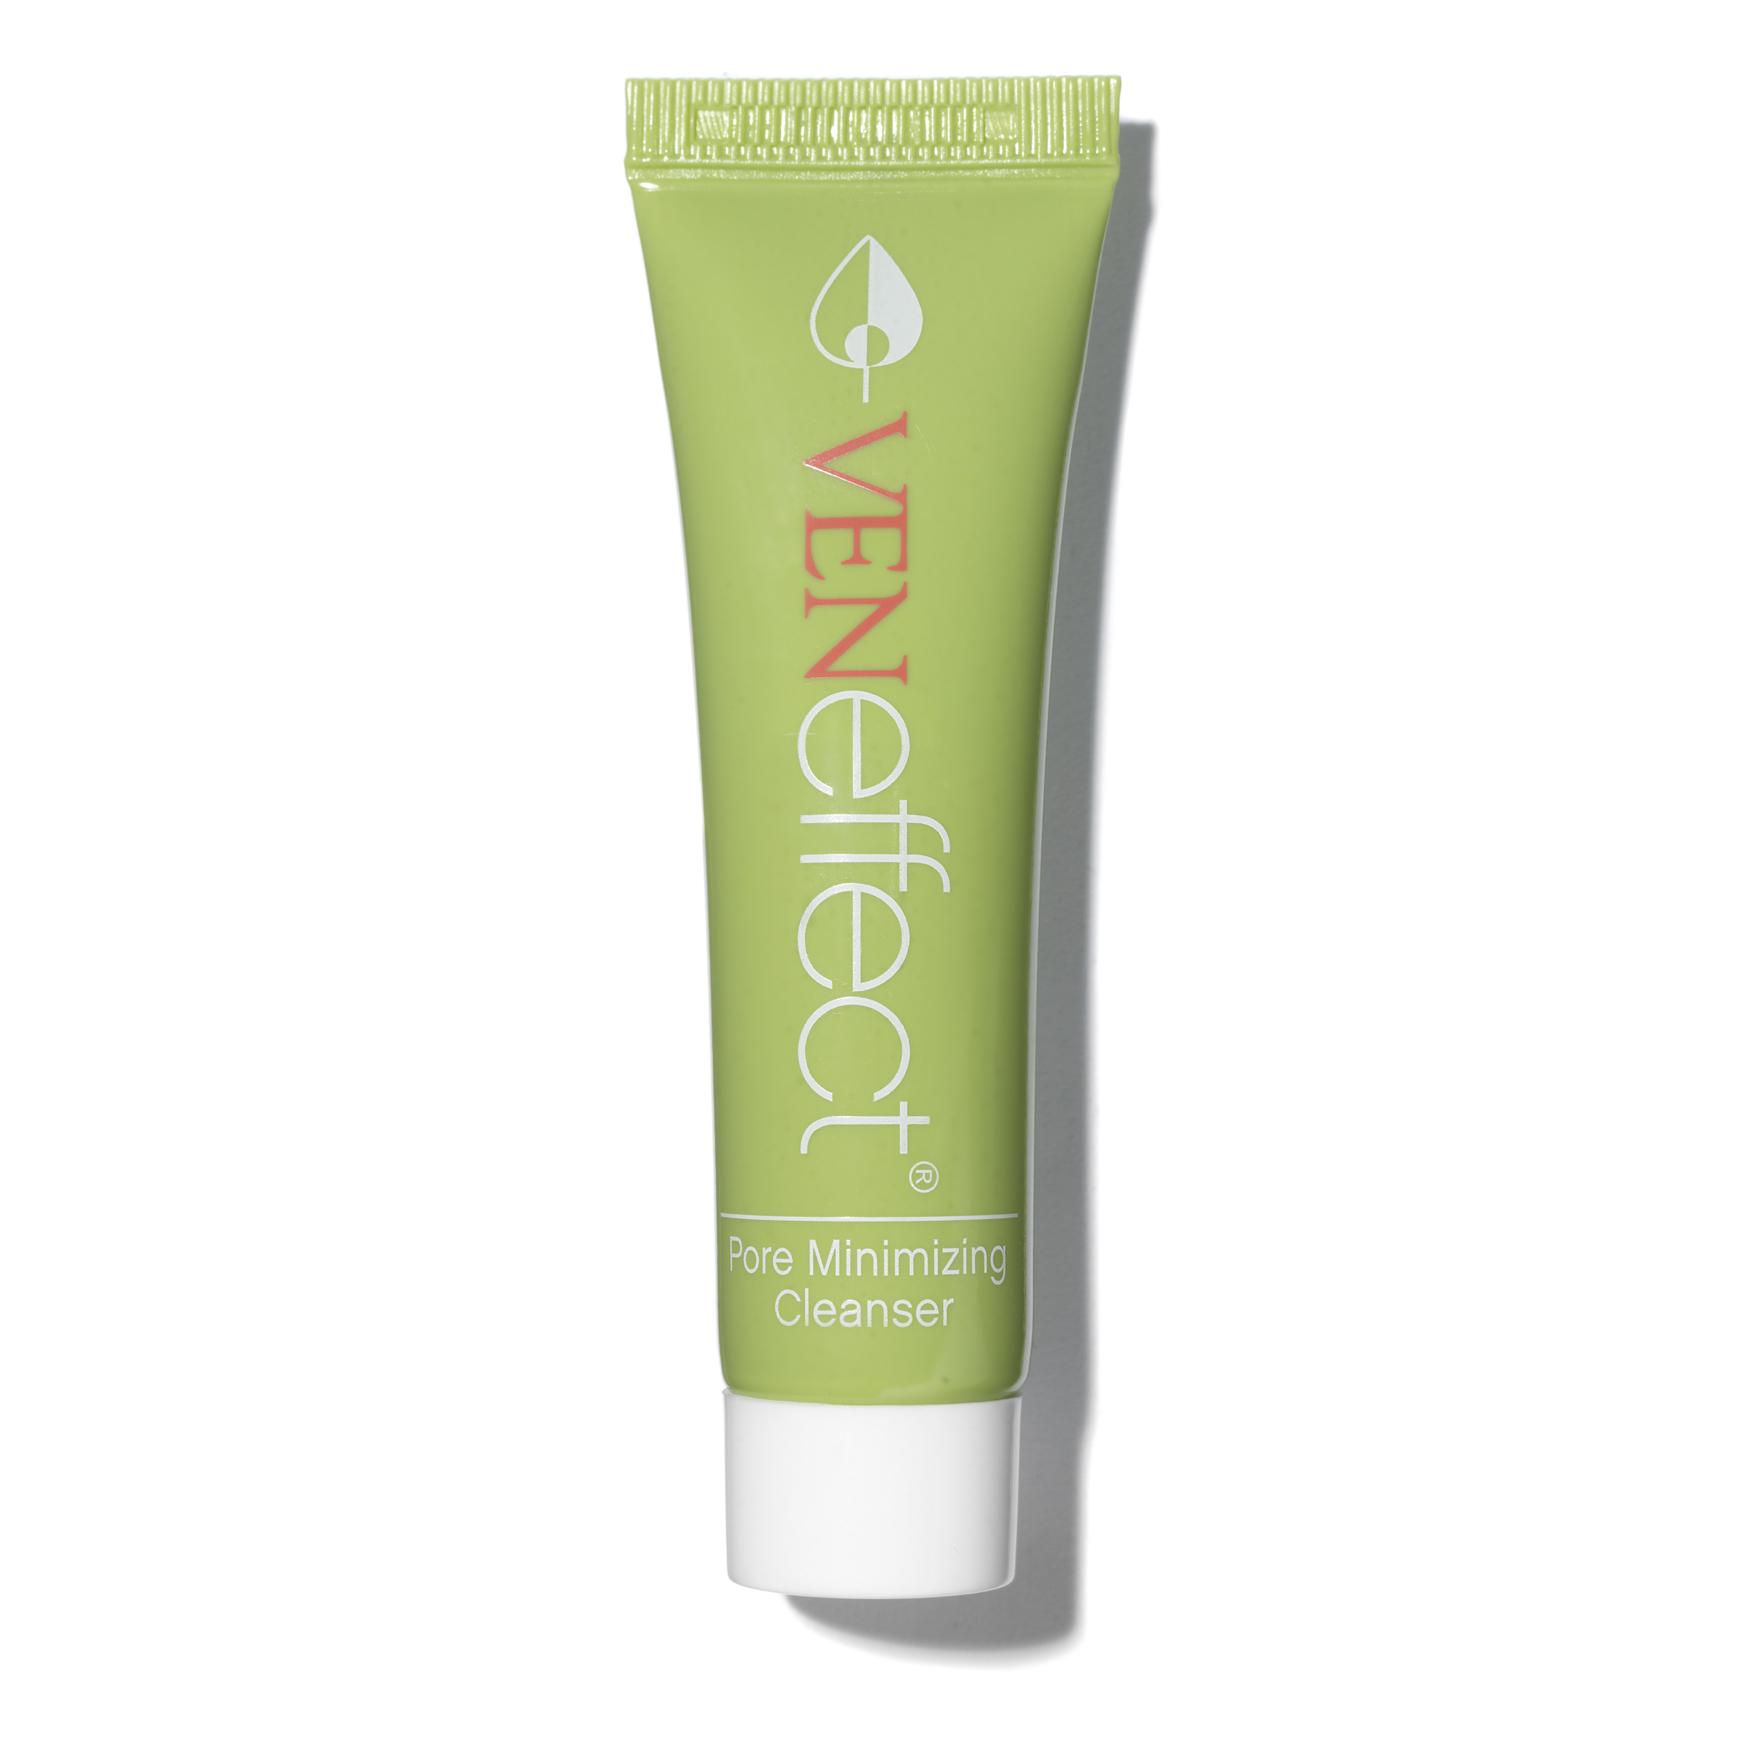 Veneffect Pore Minimizing Cleanser 15ml Space Nk